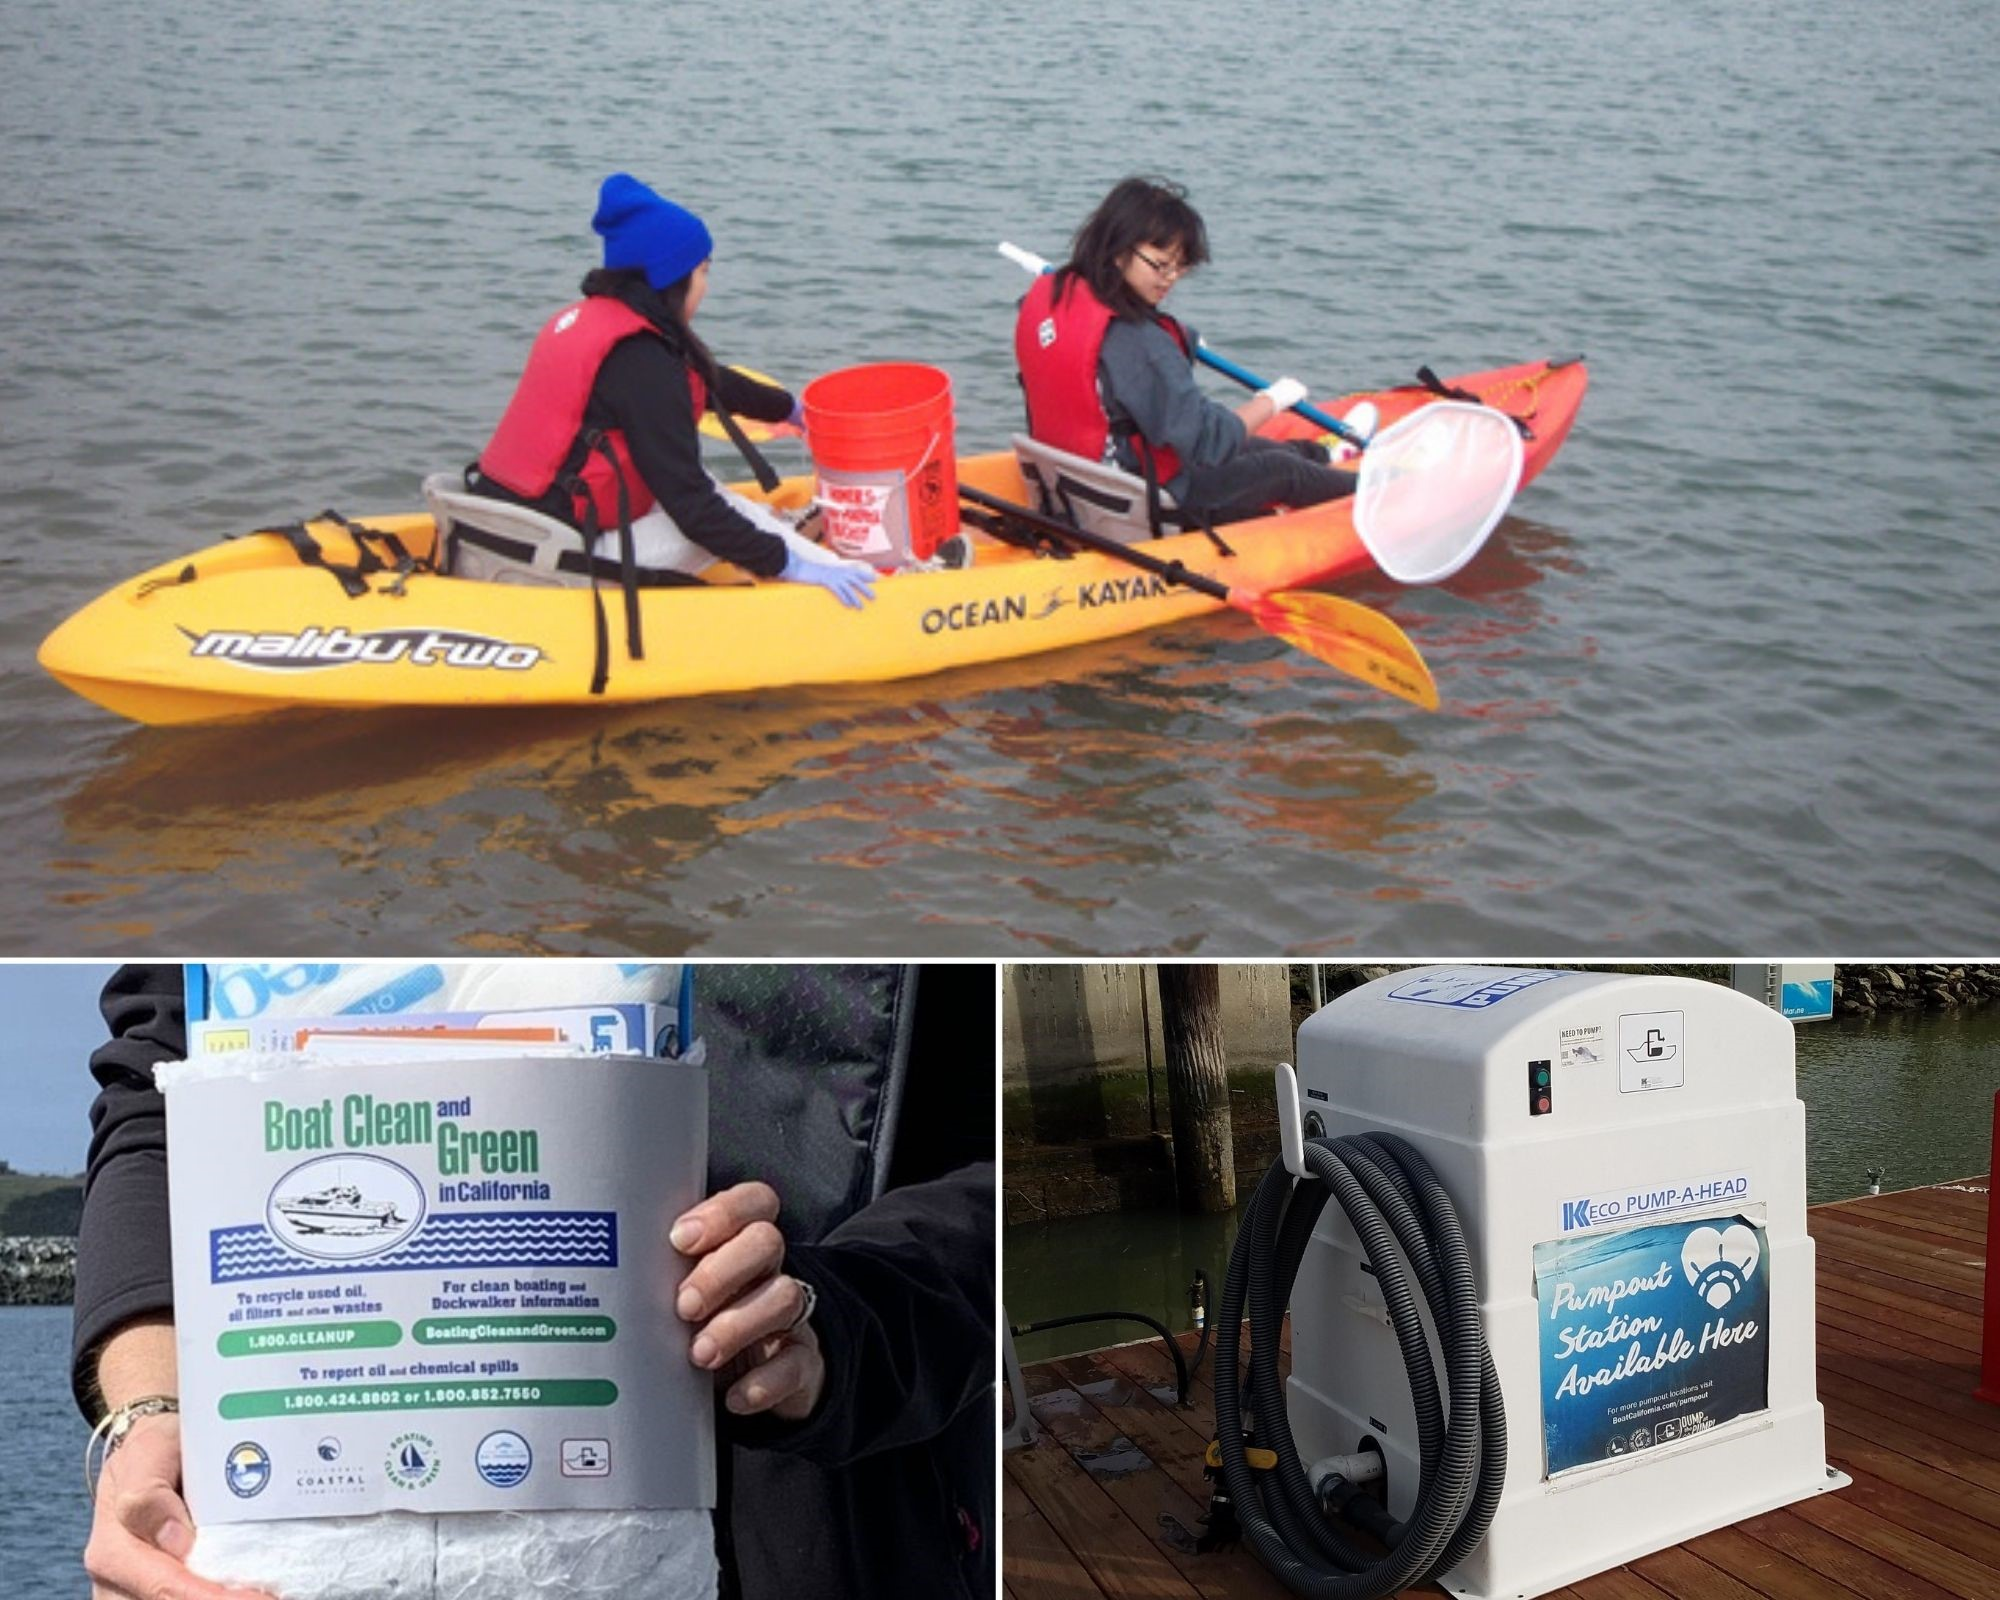 Top: Volunteers clean up along Pier 39 in San Francisco. Bottom left: Free California Boater Kit. Bottom right: Sewage pumpout station in at Vallejo Municipal Marina. Photos from Boating Clean and Green Program and San Francisco Estuary Partnership.